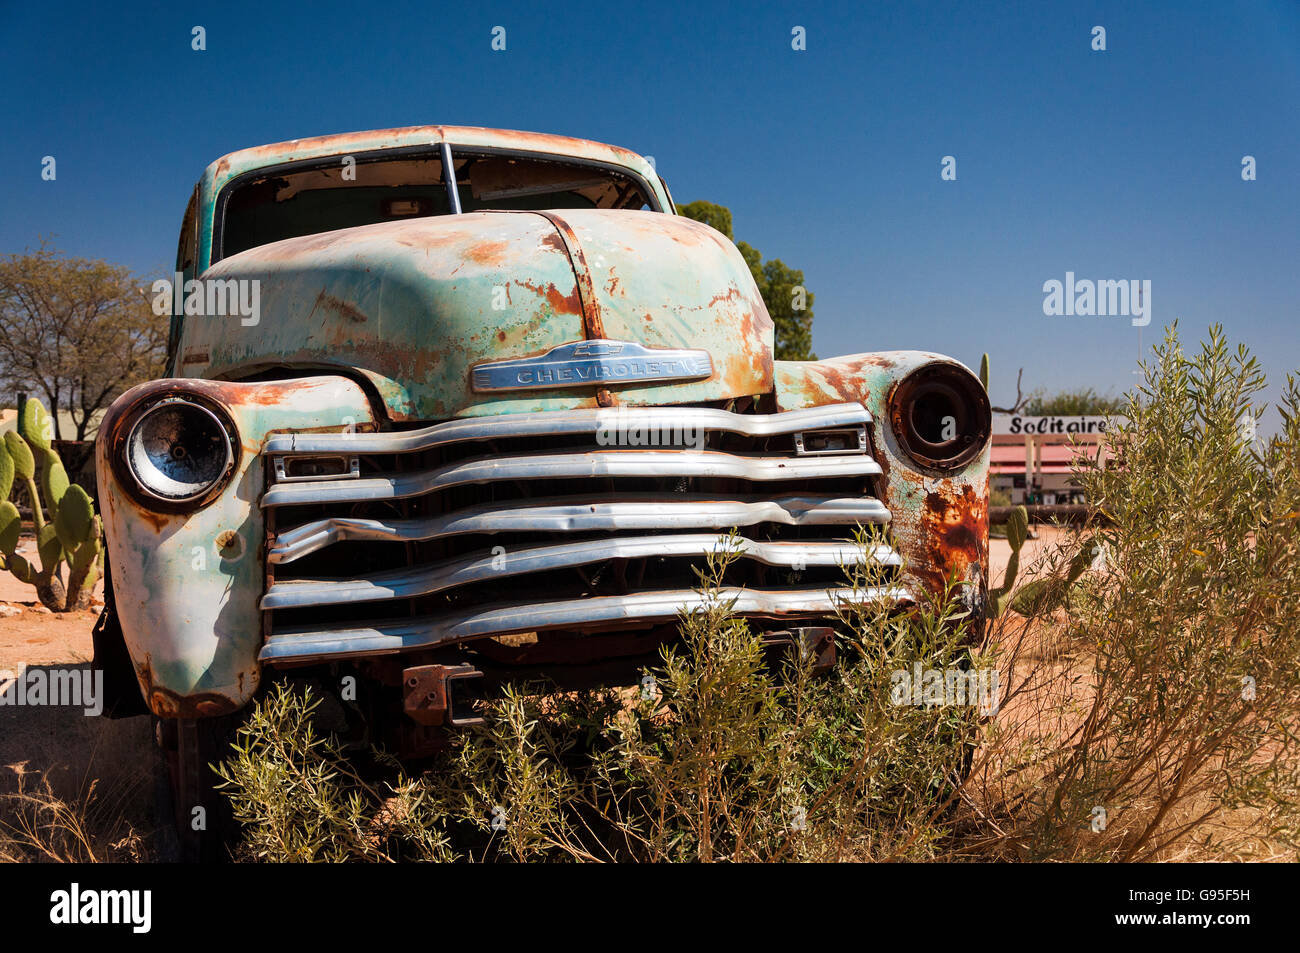 An old rusty car in Solitaire, Namibia Stock Photo, Royalty Free ...